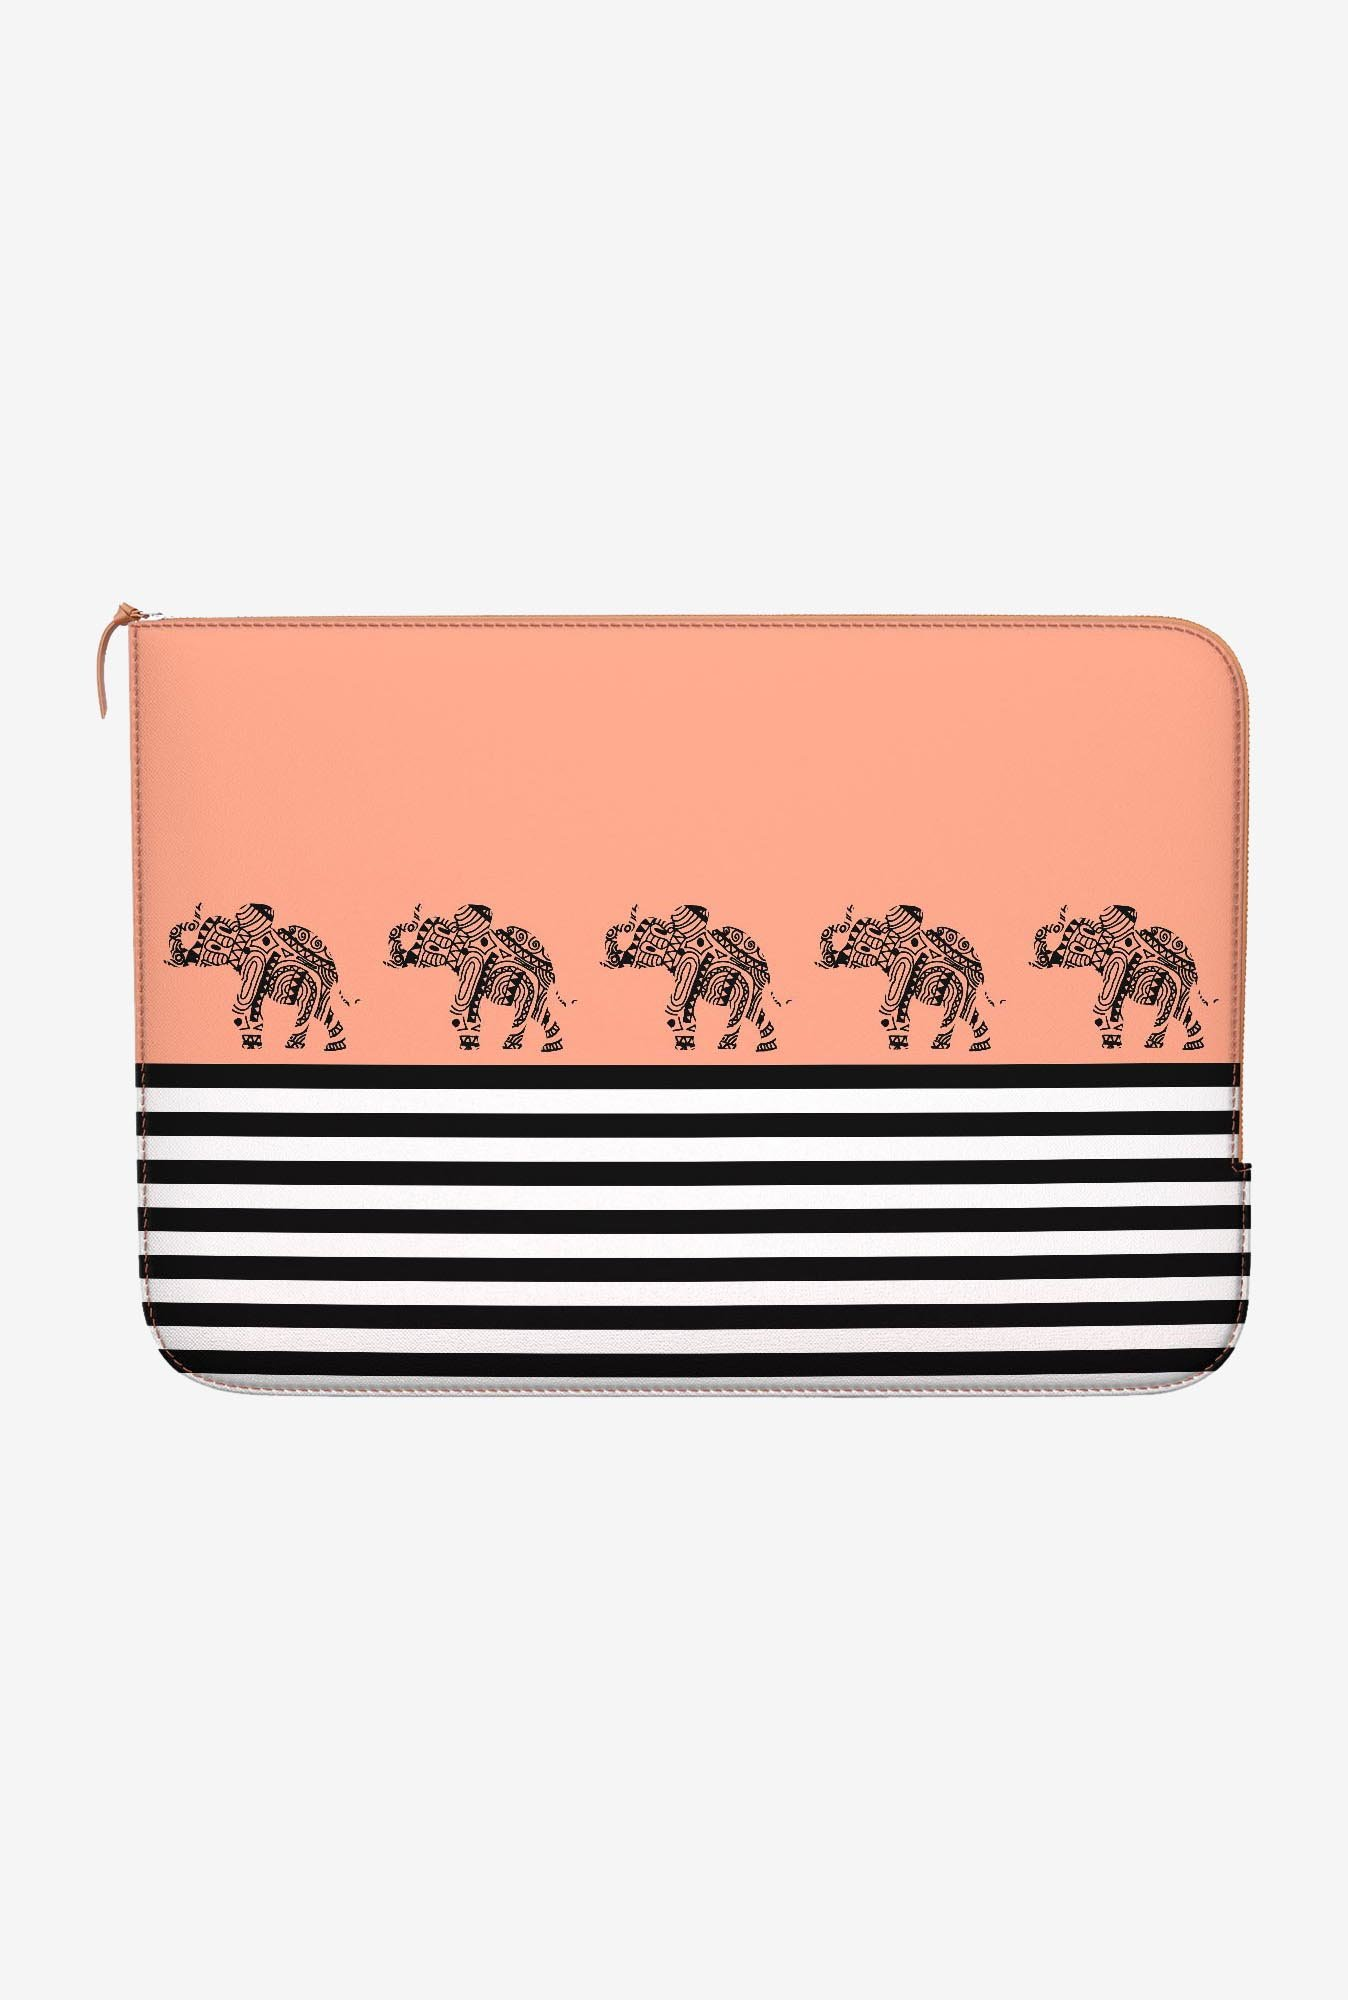 DailyObjects Stripes Coral MacBook Air 13 Zippered Sleeve